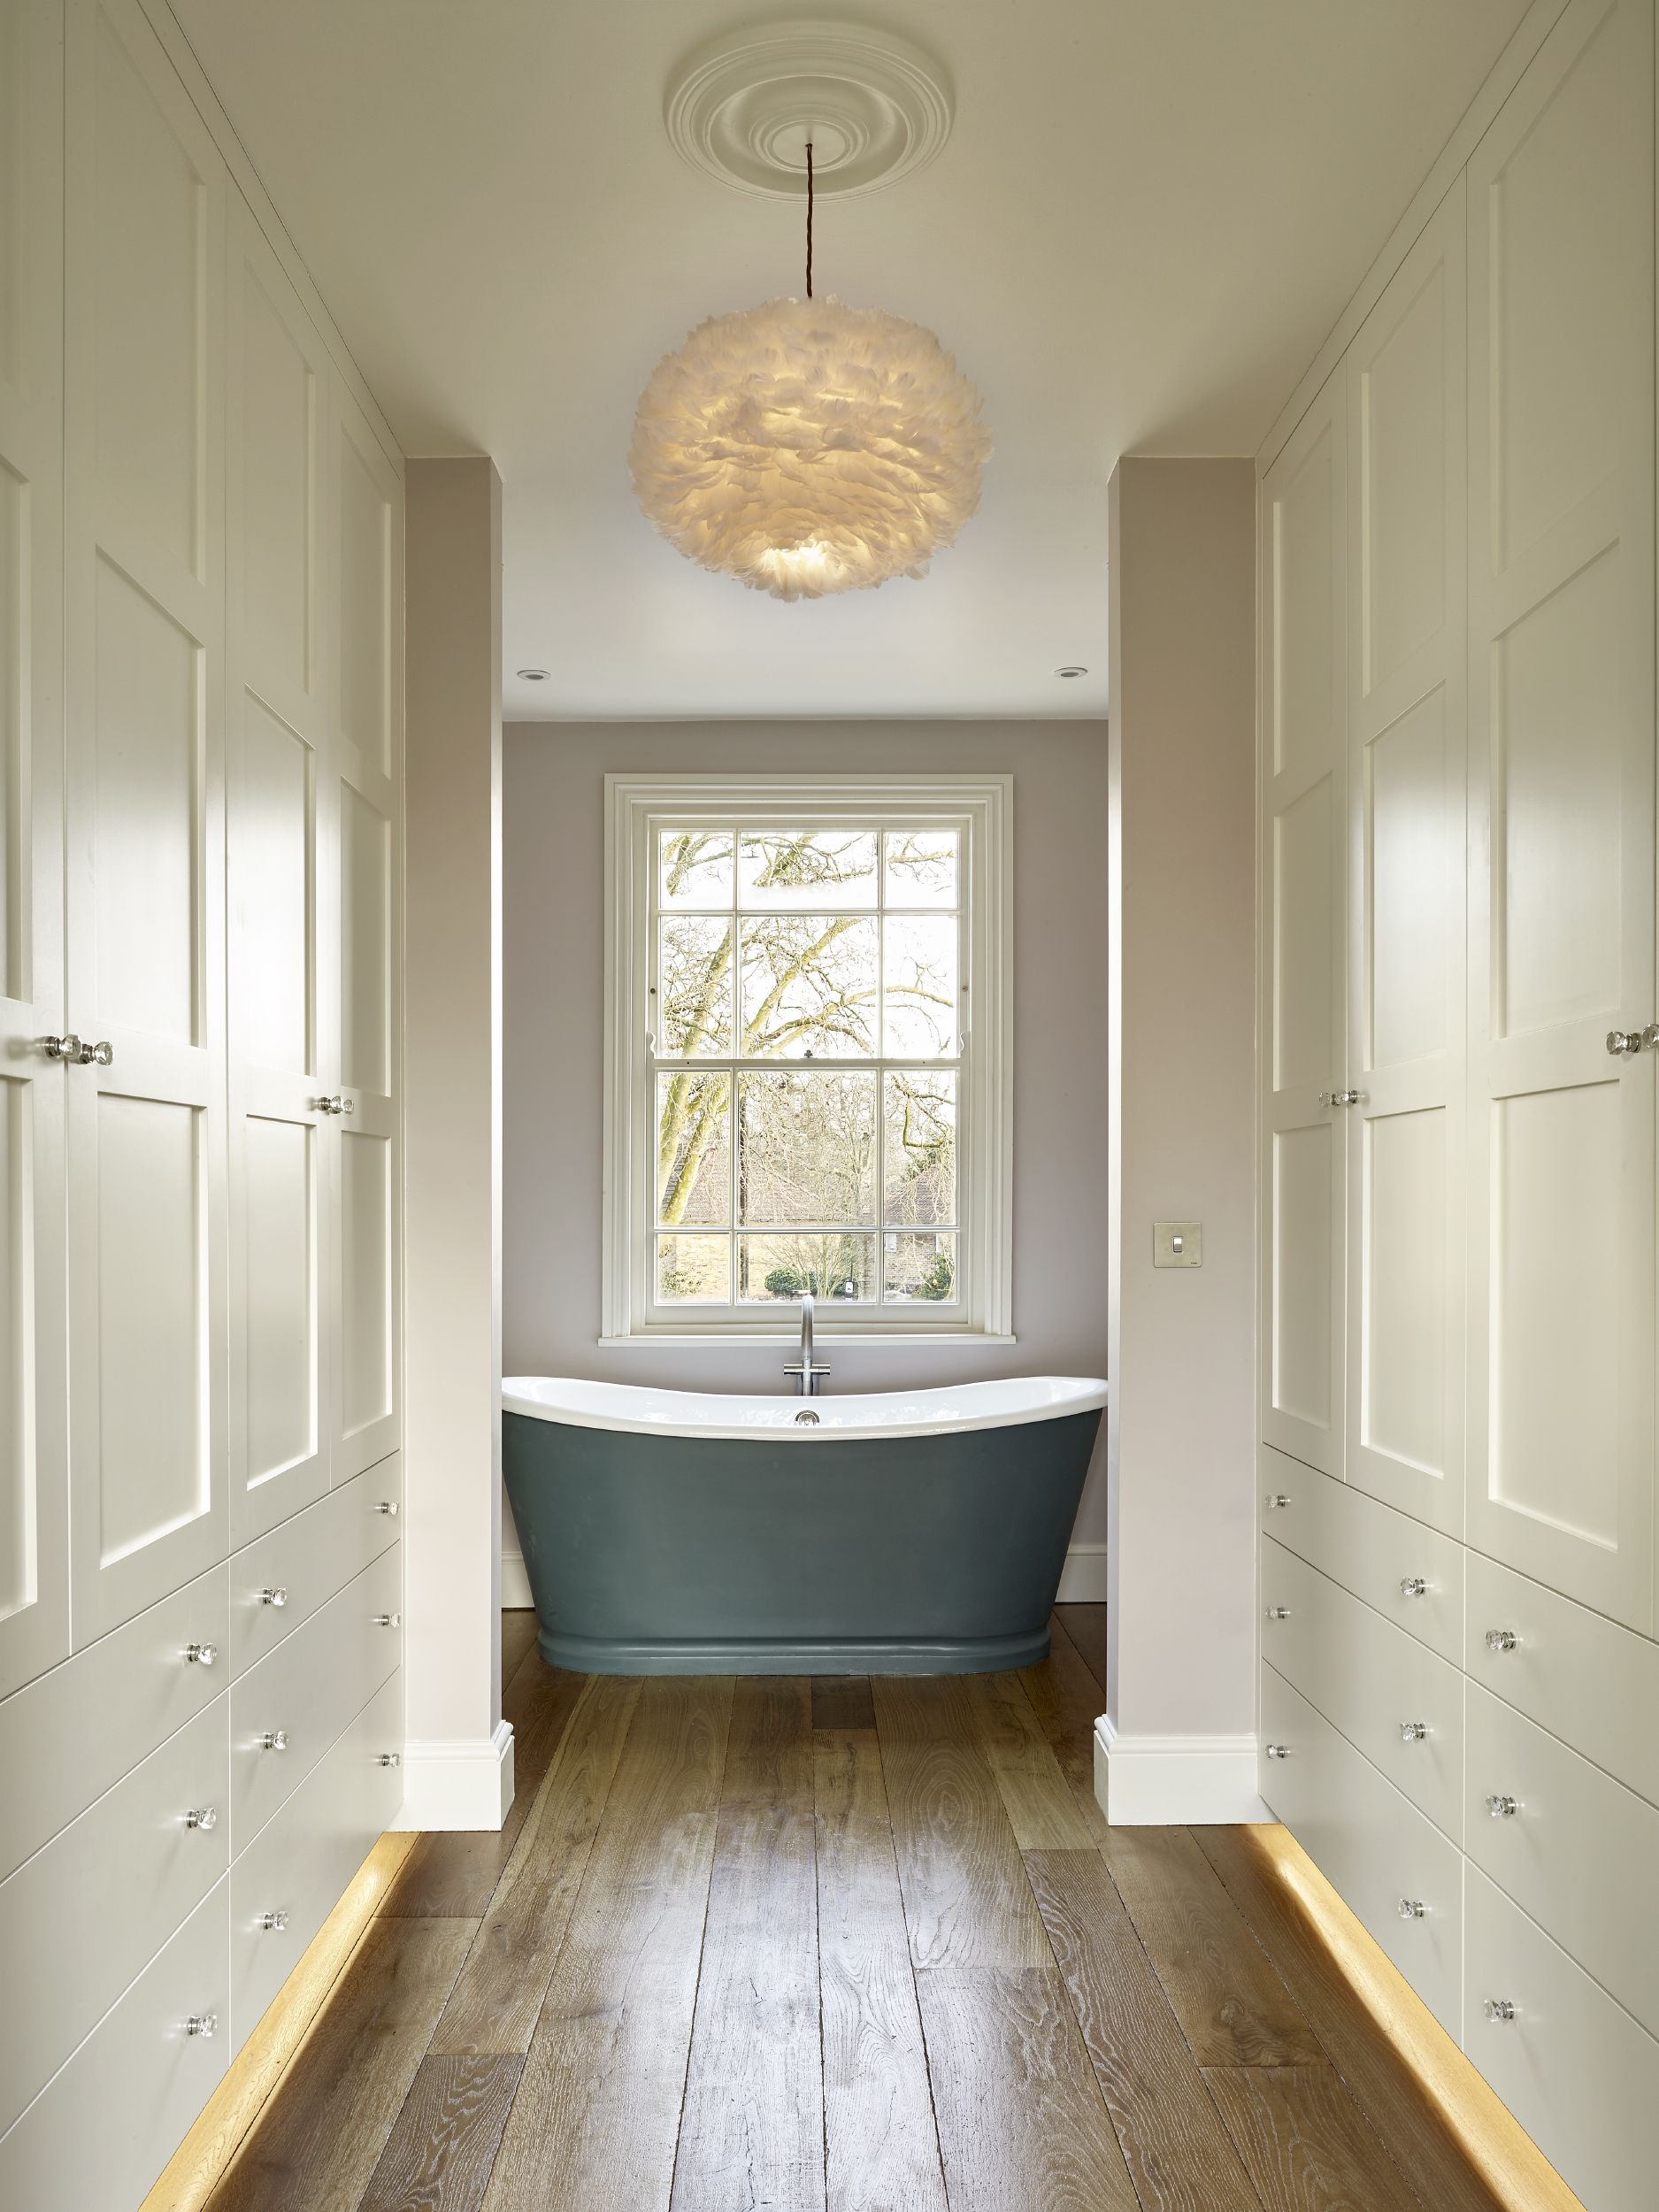 Bedrooms & Bathrooms (With images) | Dressing room design ...